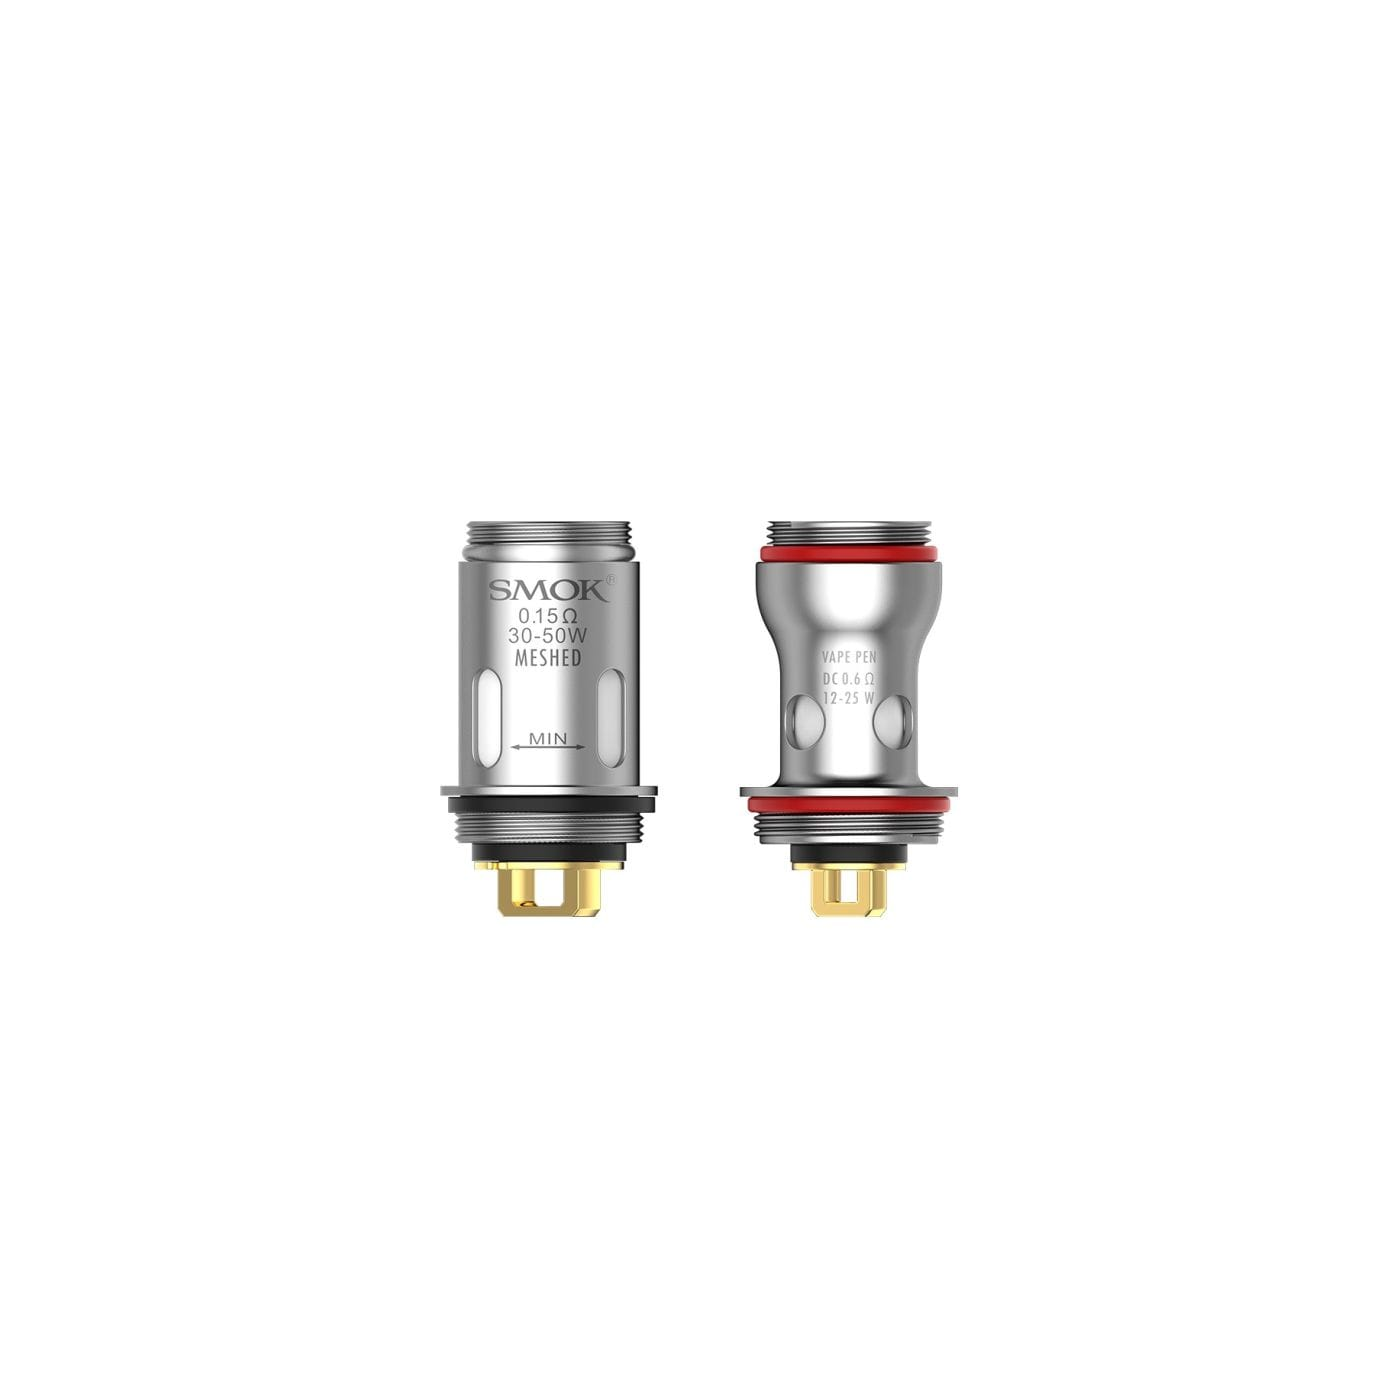 Smok Vape Pen V2 Replacement Coil - 5 Pack